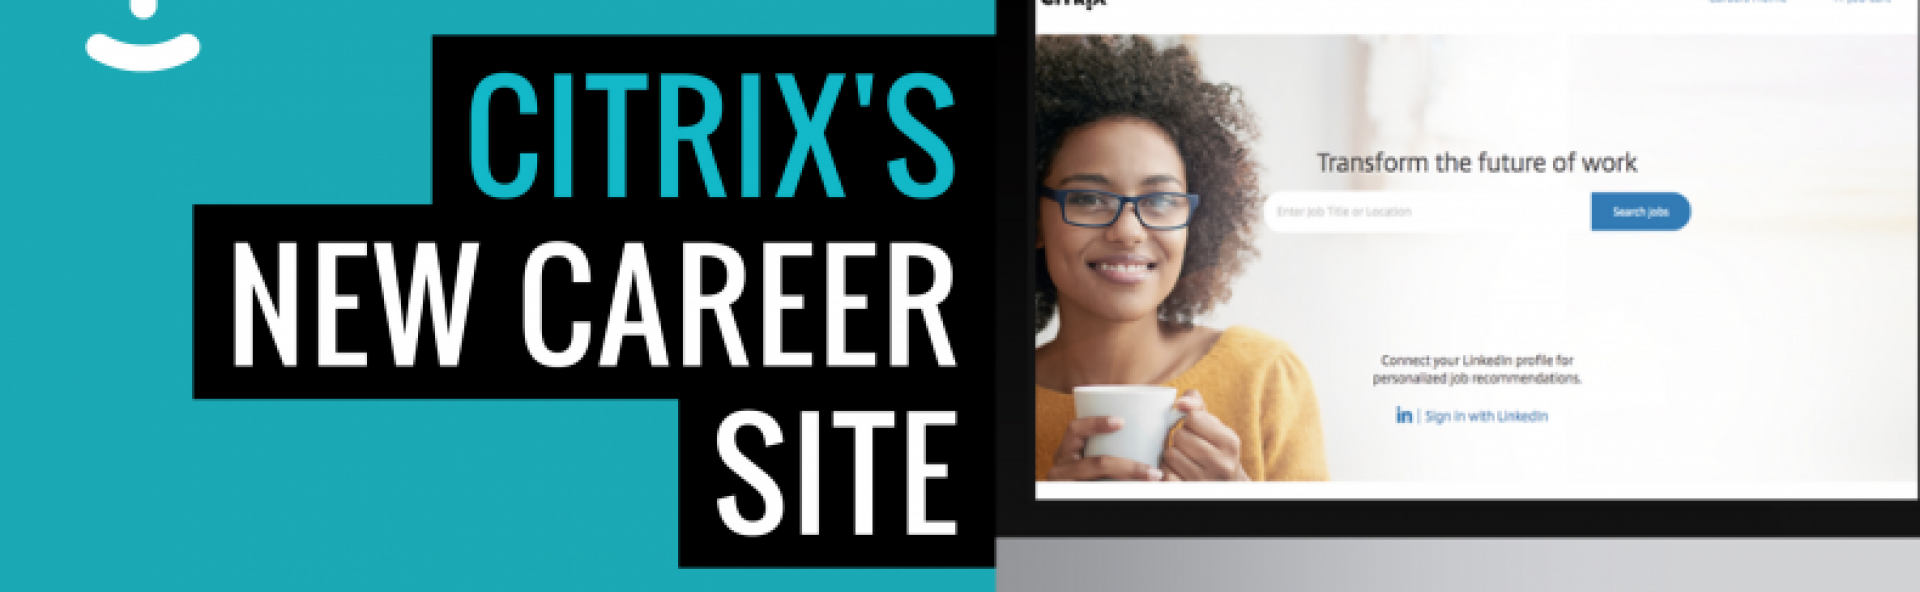 Check Out Citrix's New Career Site, Powered by Phenom People